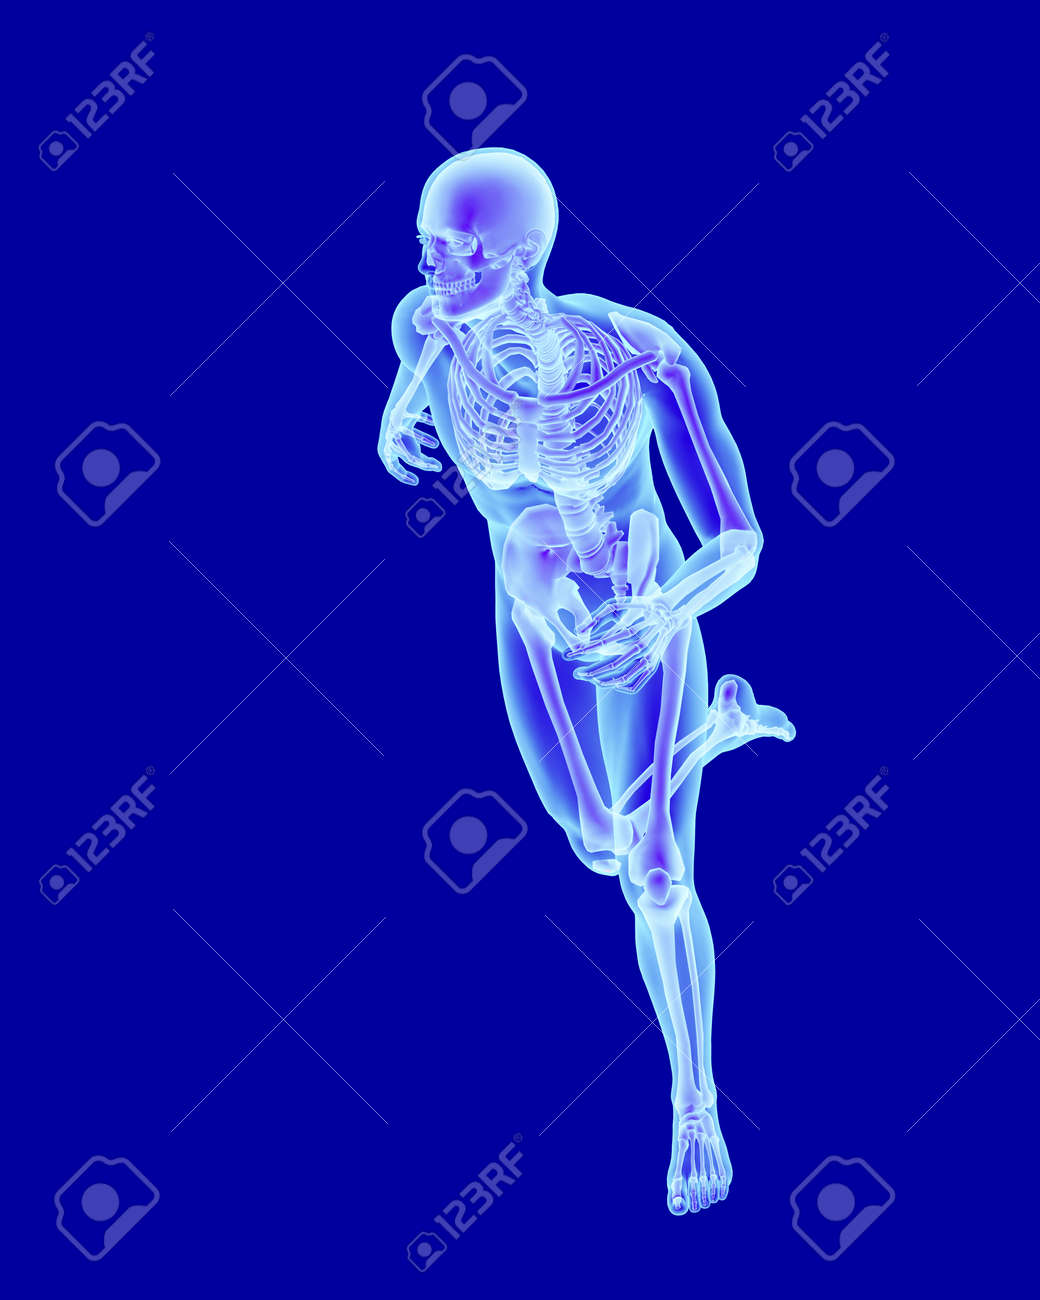 X-ray Scan Anatomy Of A Running Man With Visible Skeleton Stock ...